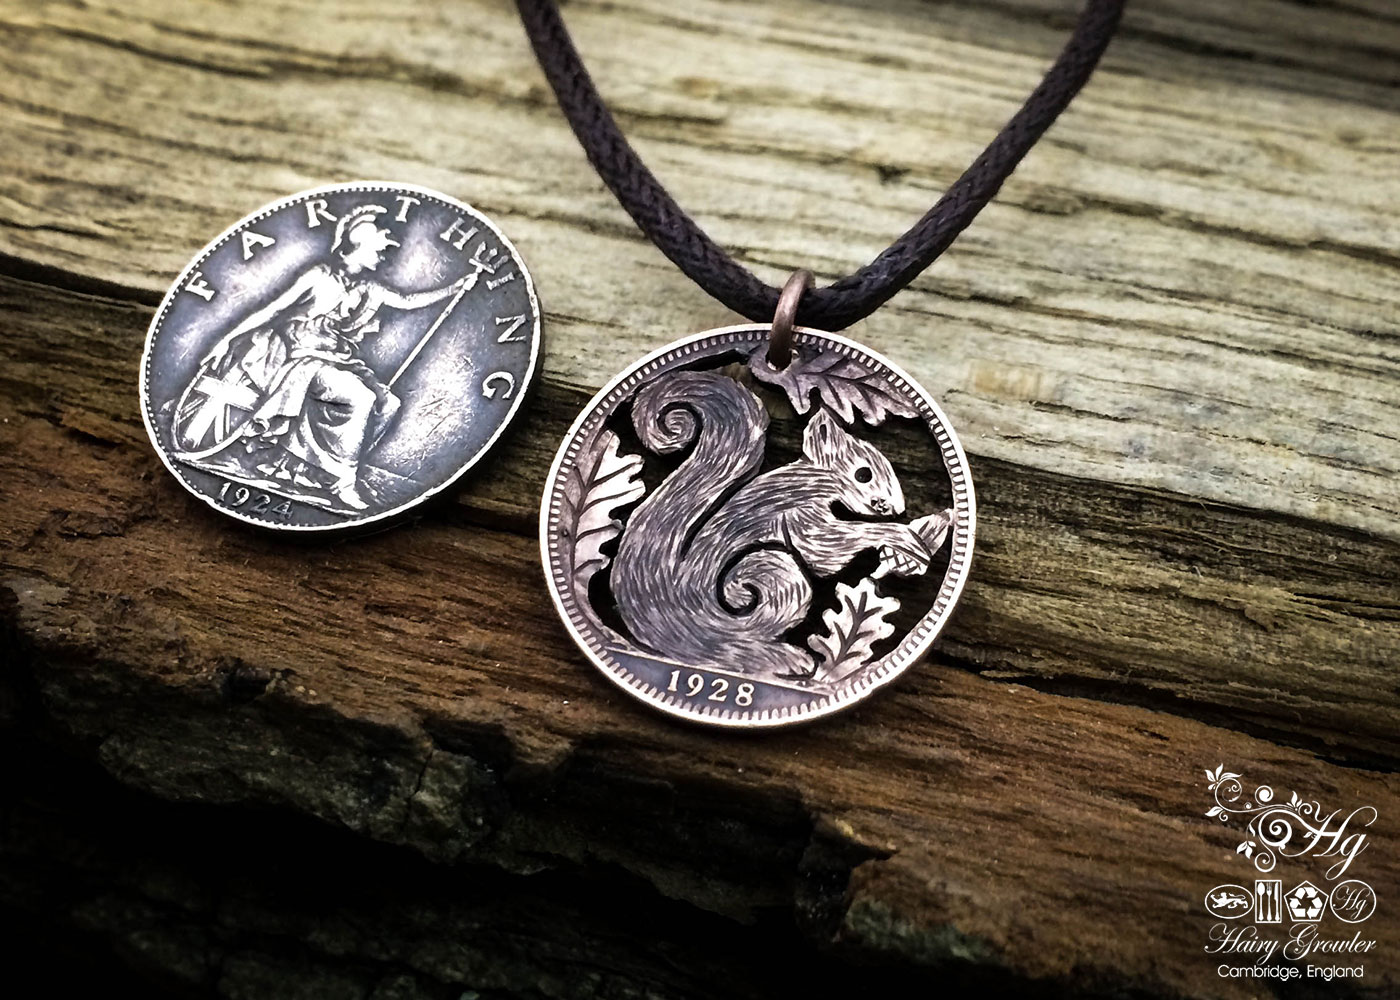 Handcrafted and recycled Farthing coin squirrel pendant necklace